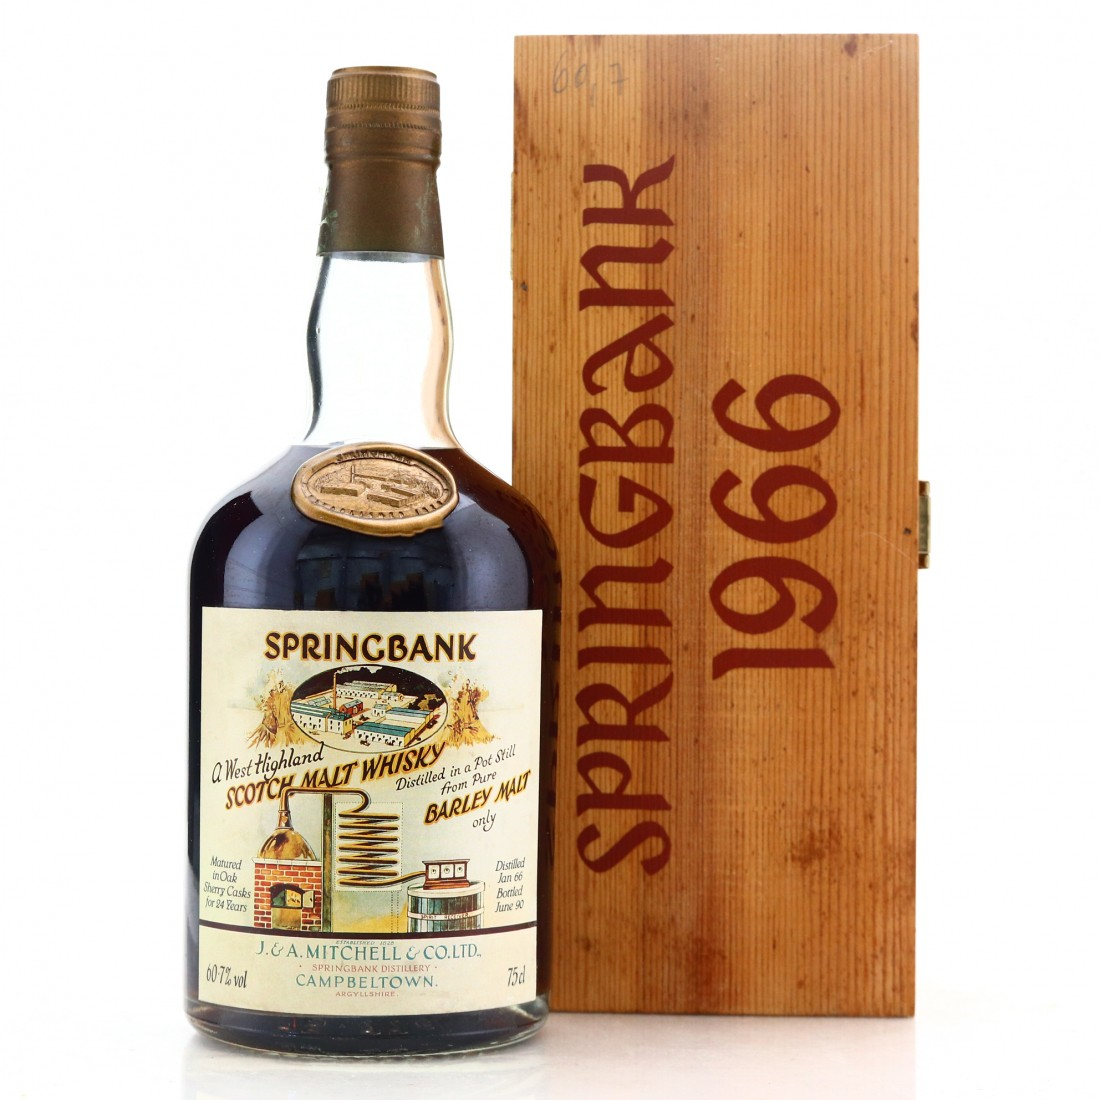 Springbank 1966 Sherry Cask 24 Year Old #441 / Local Barley